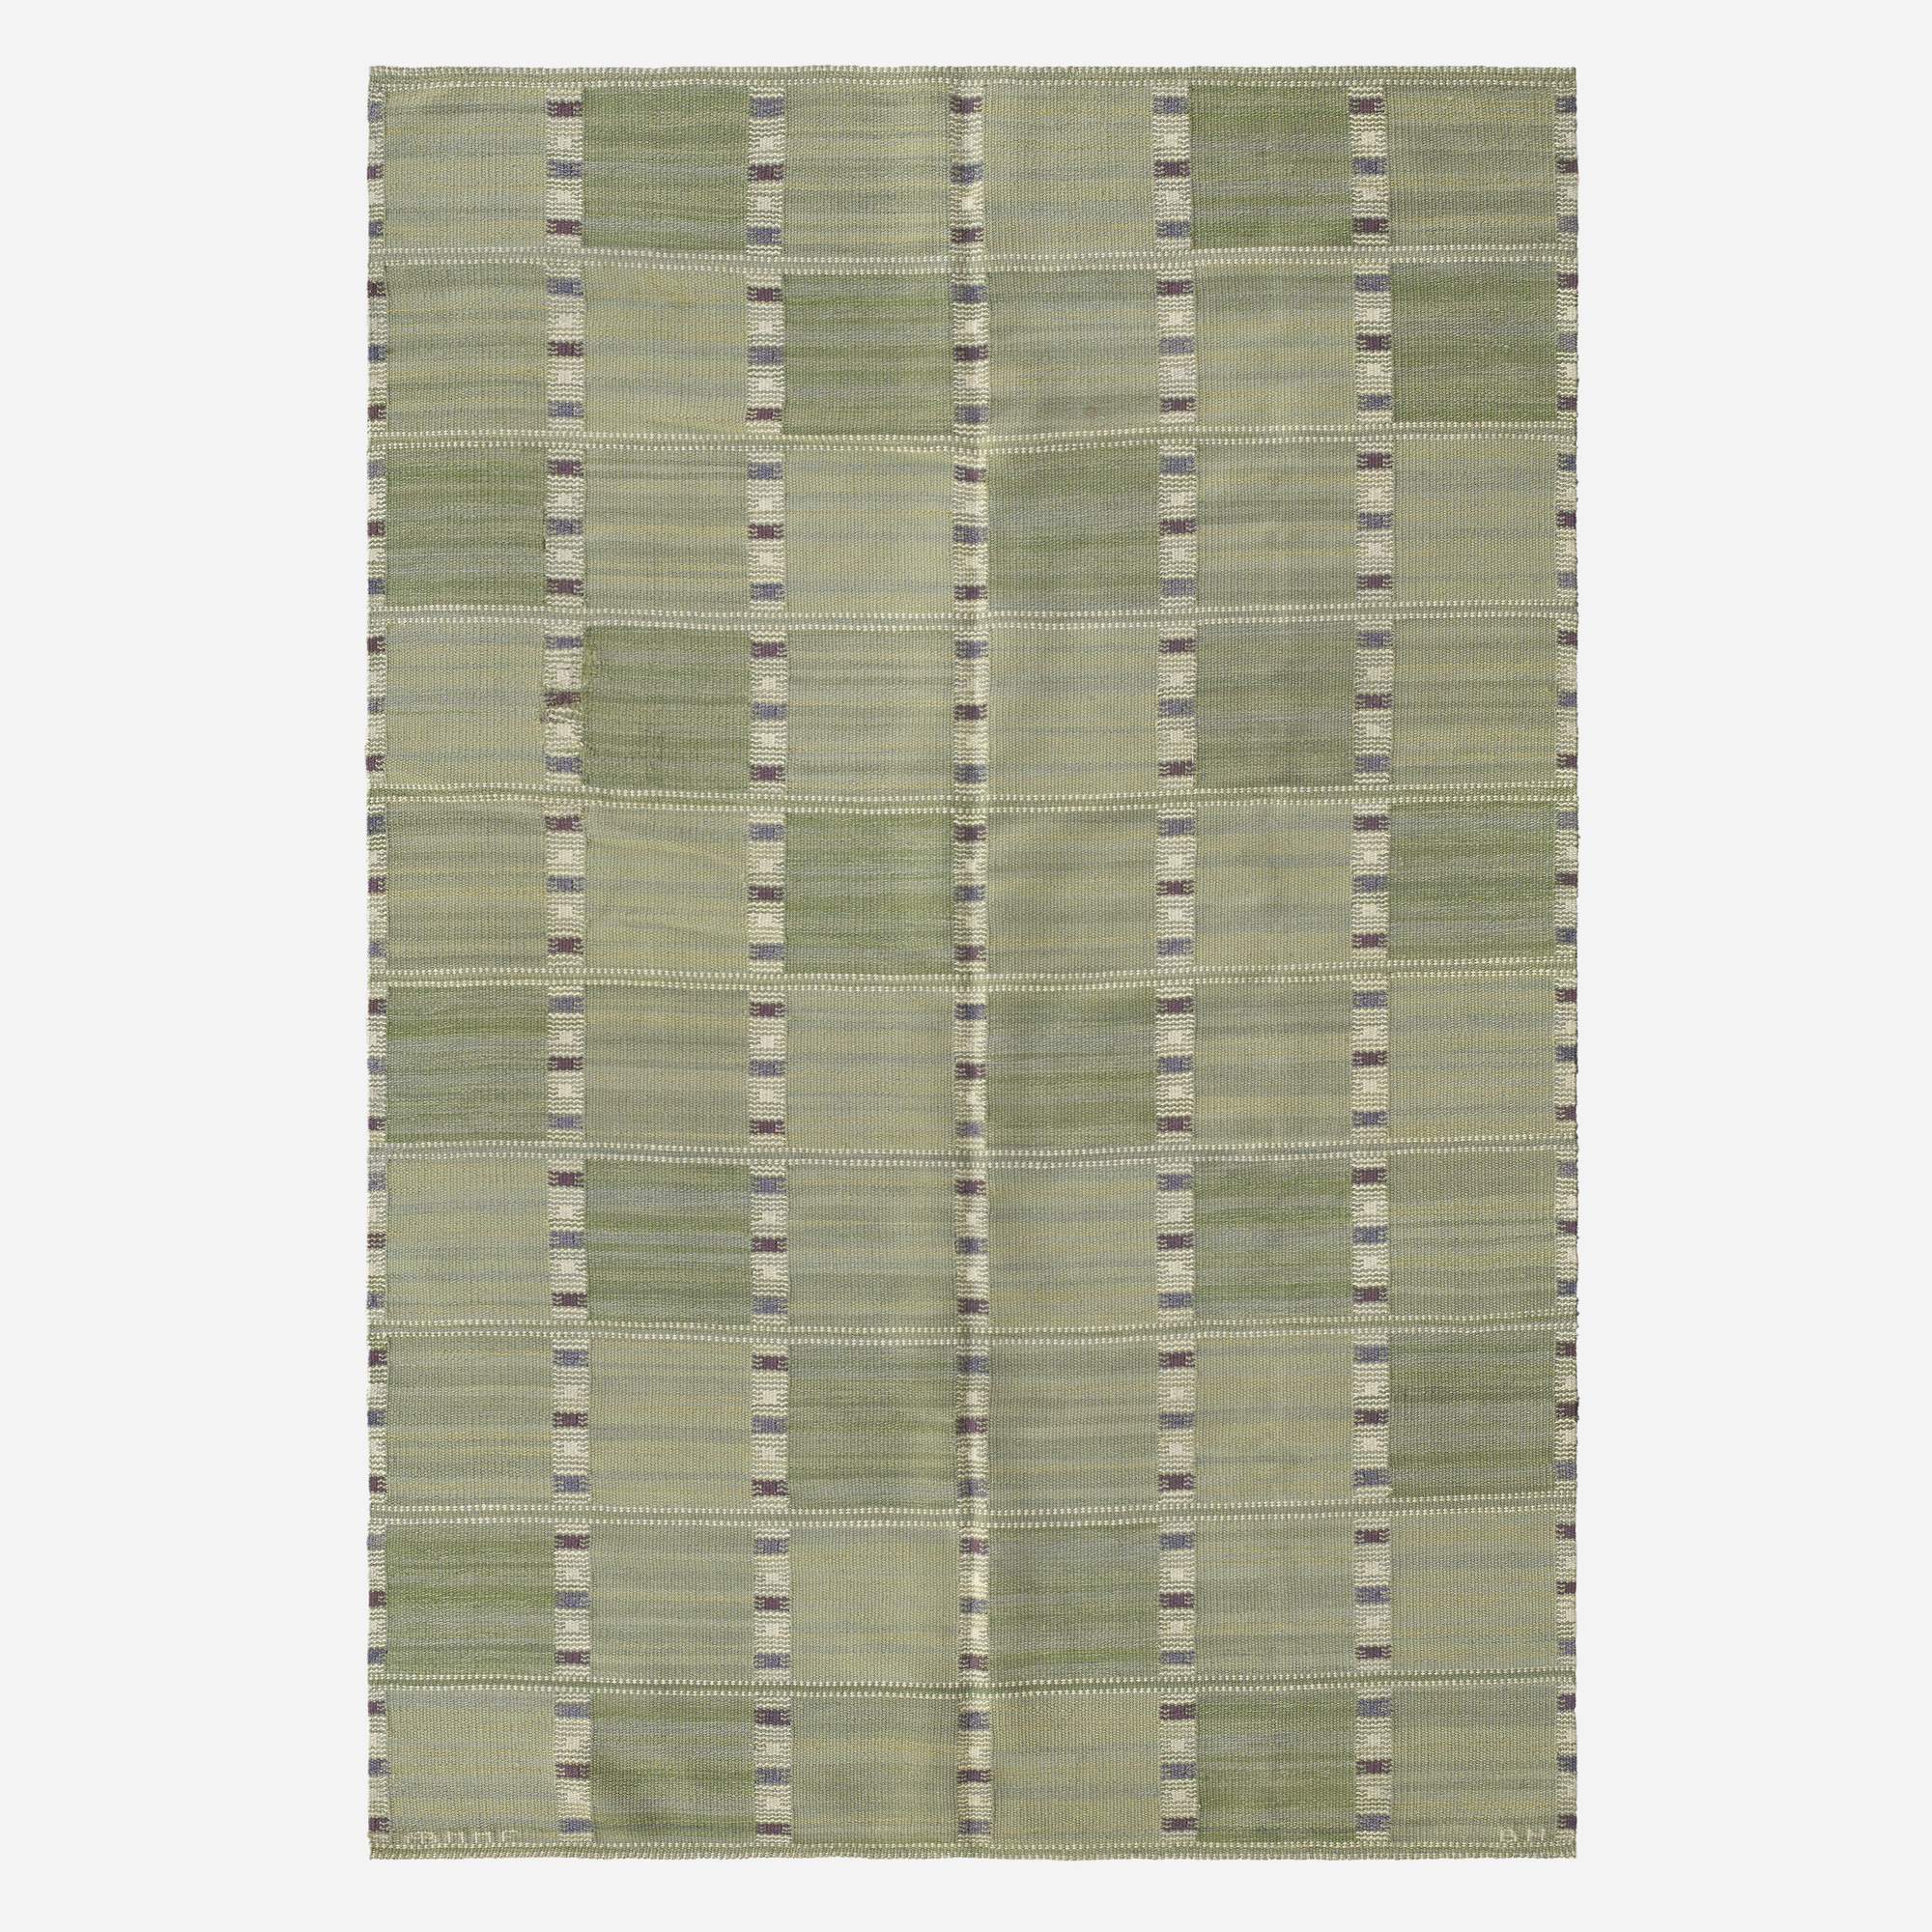 114: Barbro Nilsson / Falurutan flatweave carpet (1 of 2)